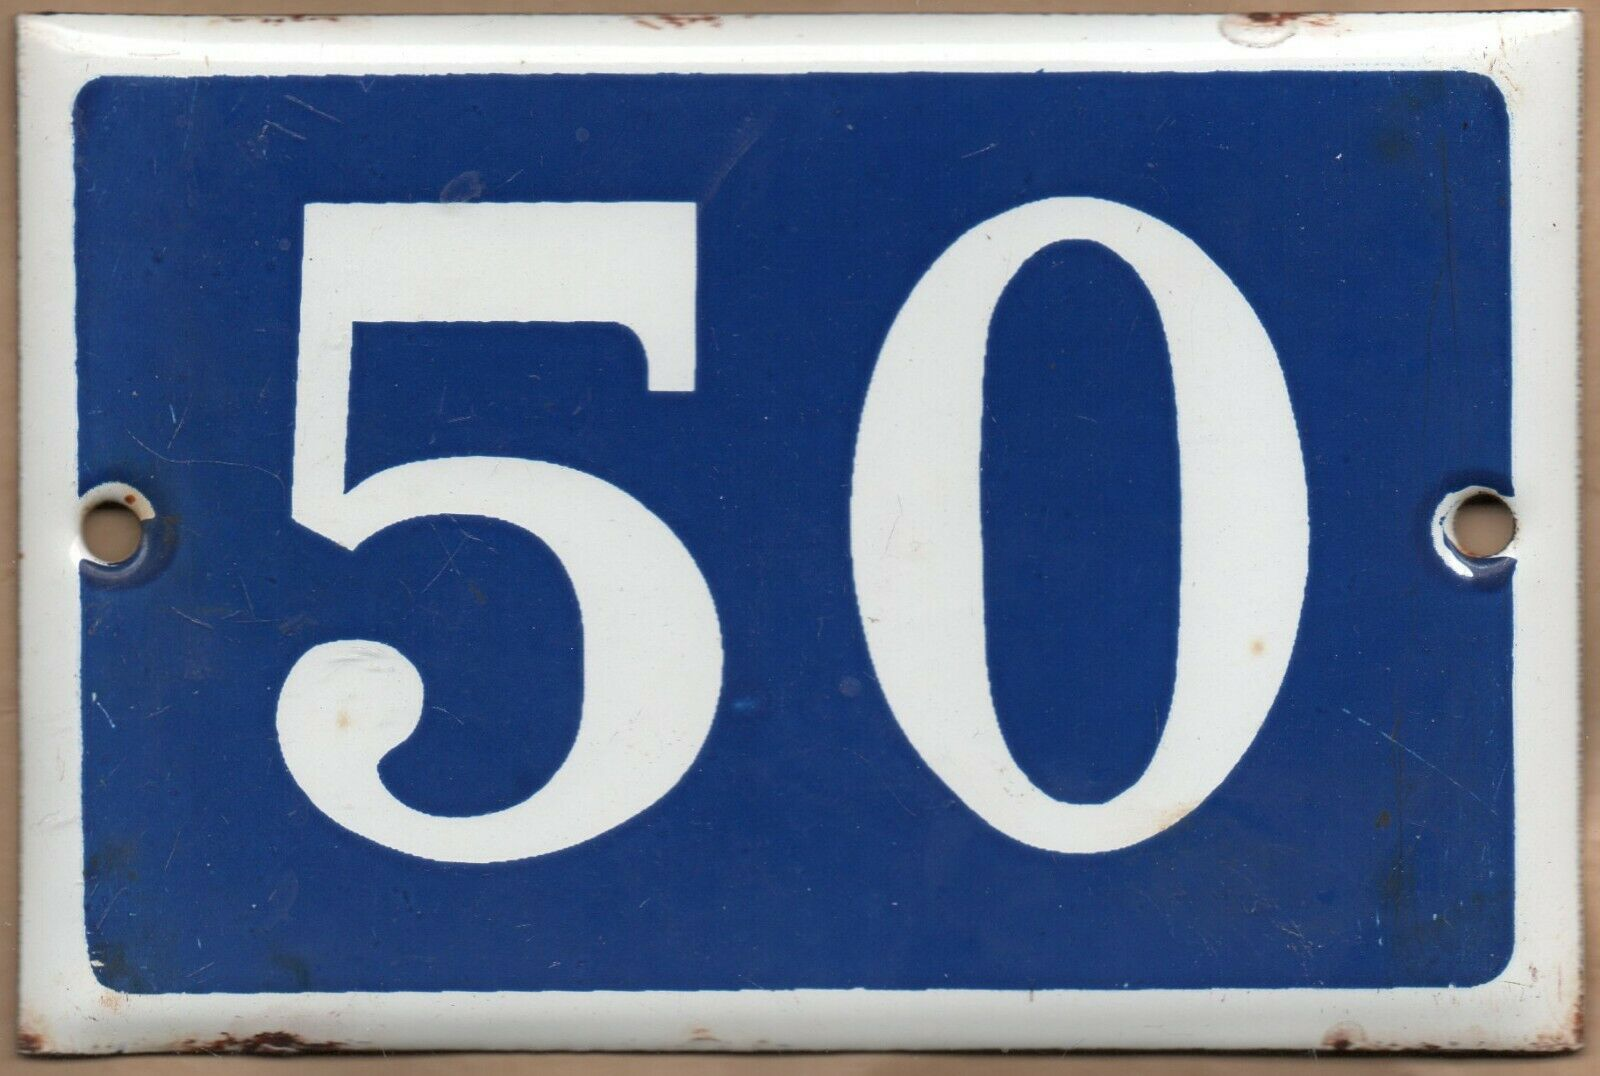 Old Blau French house number 50 door gate plate plaque enamel steel metal sign